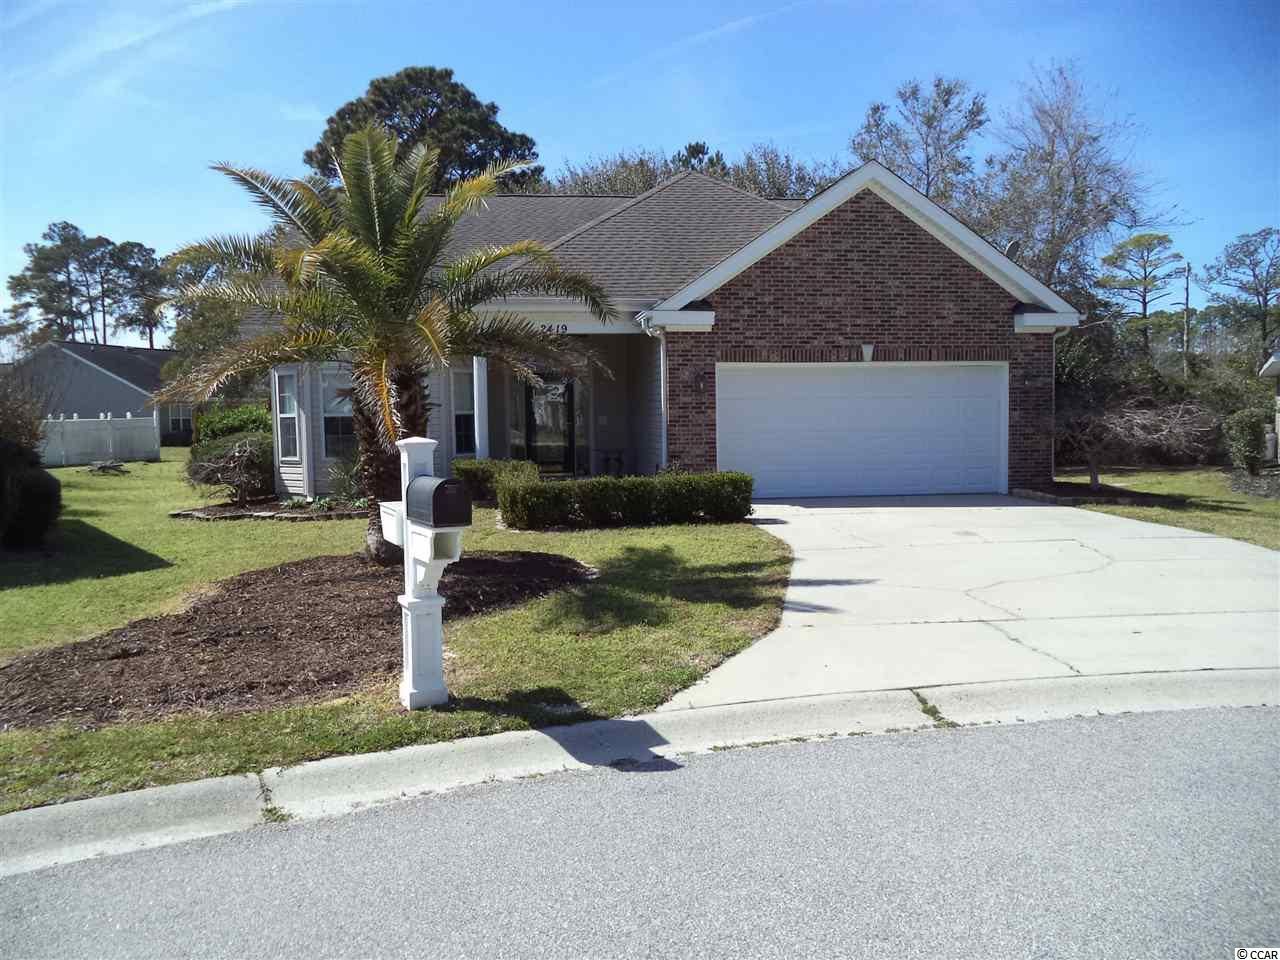 3 bedroom 2 bath ranch style home.  New paint, new water heater, new faucets.  All tile floors.  HVAC repairs and new servicing done by TNT Heat and Air Company.  Great home with fenced yard for kids or animals.  There is a well for sprinklers.  Private location with a great clubhouse and amenities.  Near Calibash and Little River at the State line.